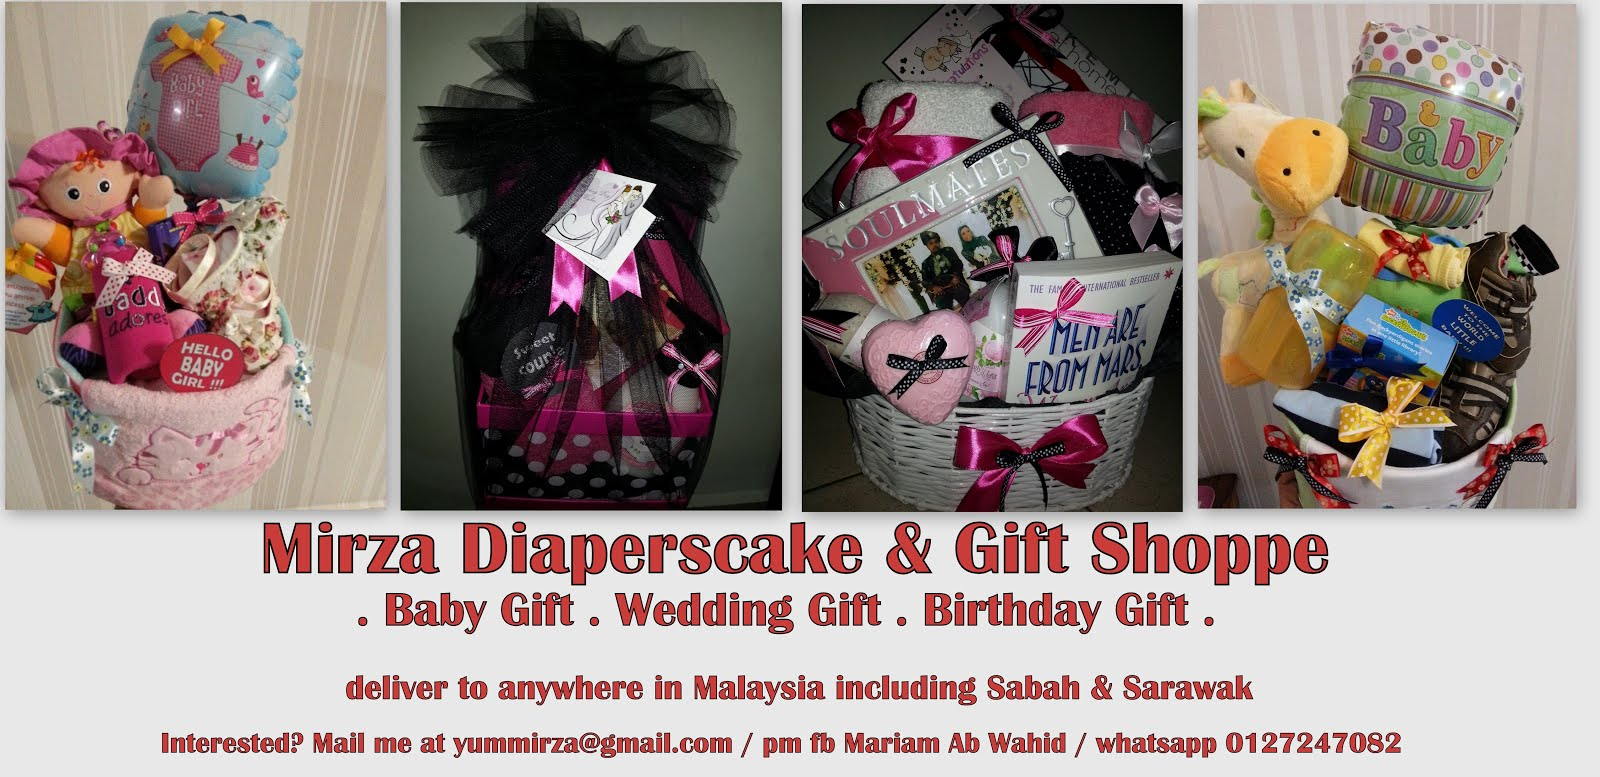 Mirza Diapers Cake & Gift